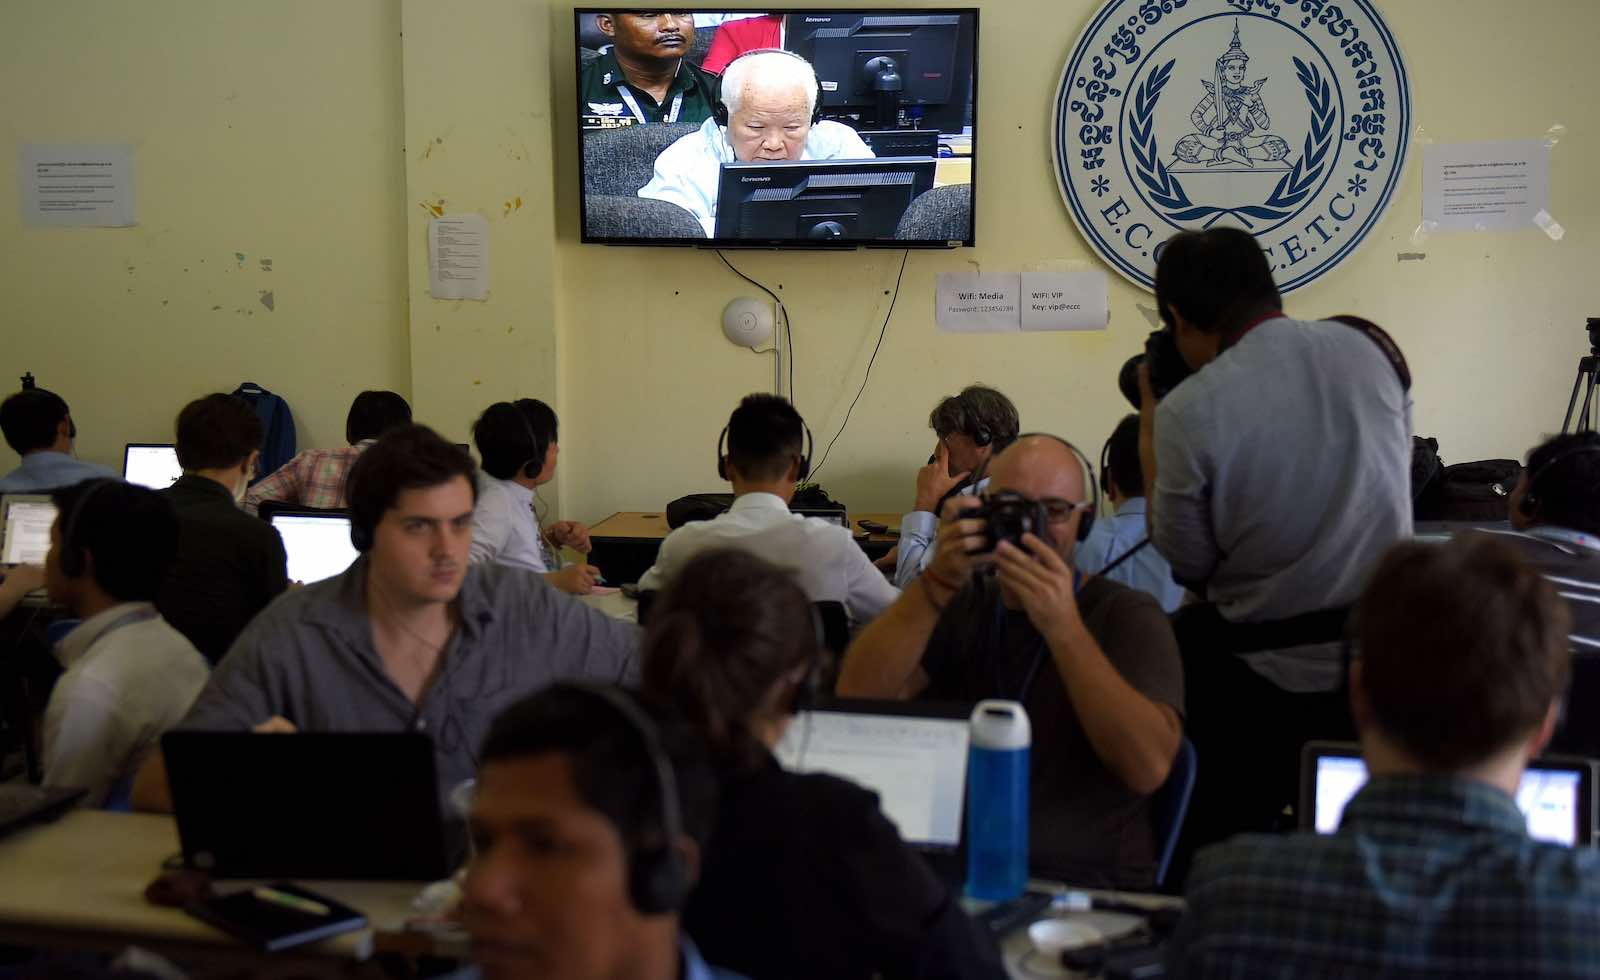 Journalists watch the verdict for former Khmer Rouge leader Khieu Samphan shown on a live video broadcast on 16 November (Photo: Tang Chhin Sothy via Getty)